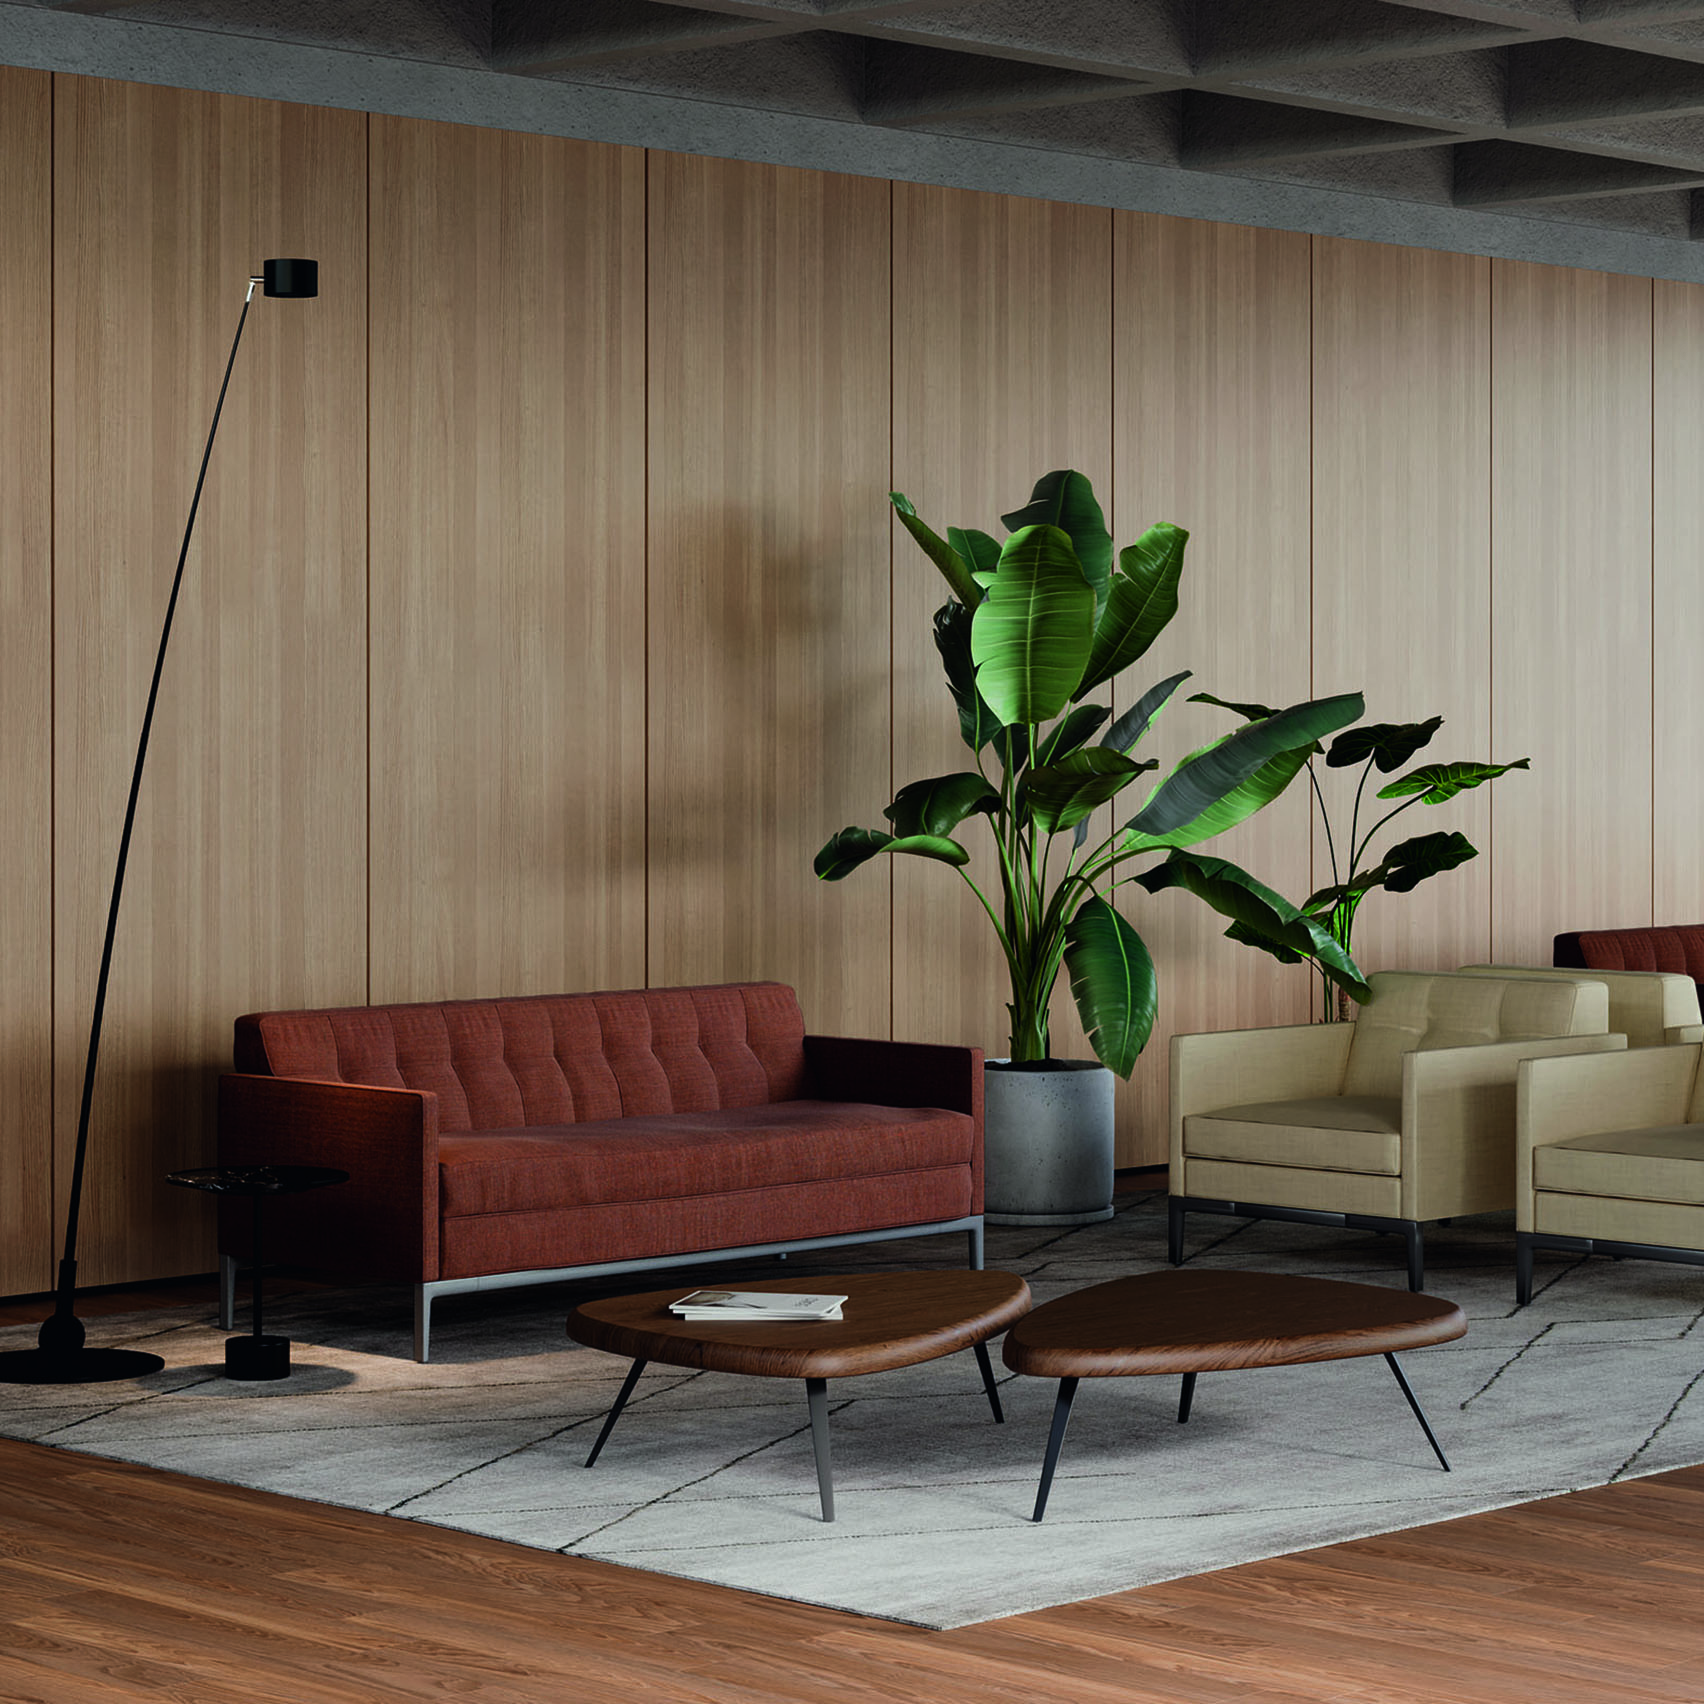 Volage EX-S Slim sofa by Philippe Starck for Cassina